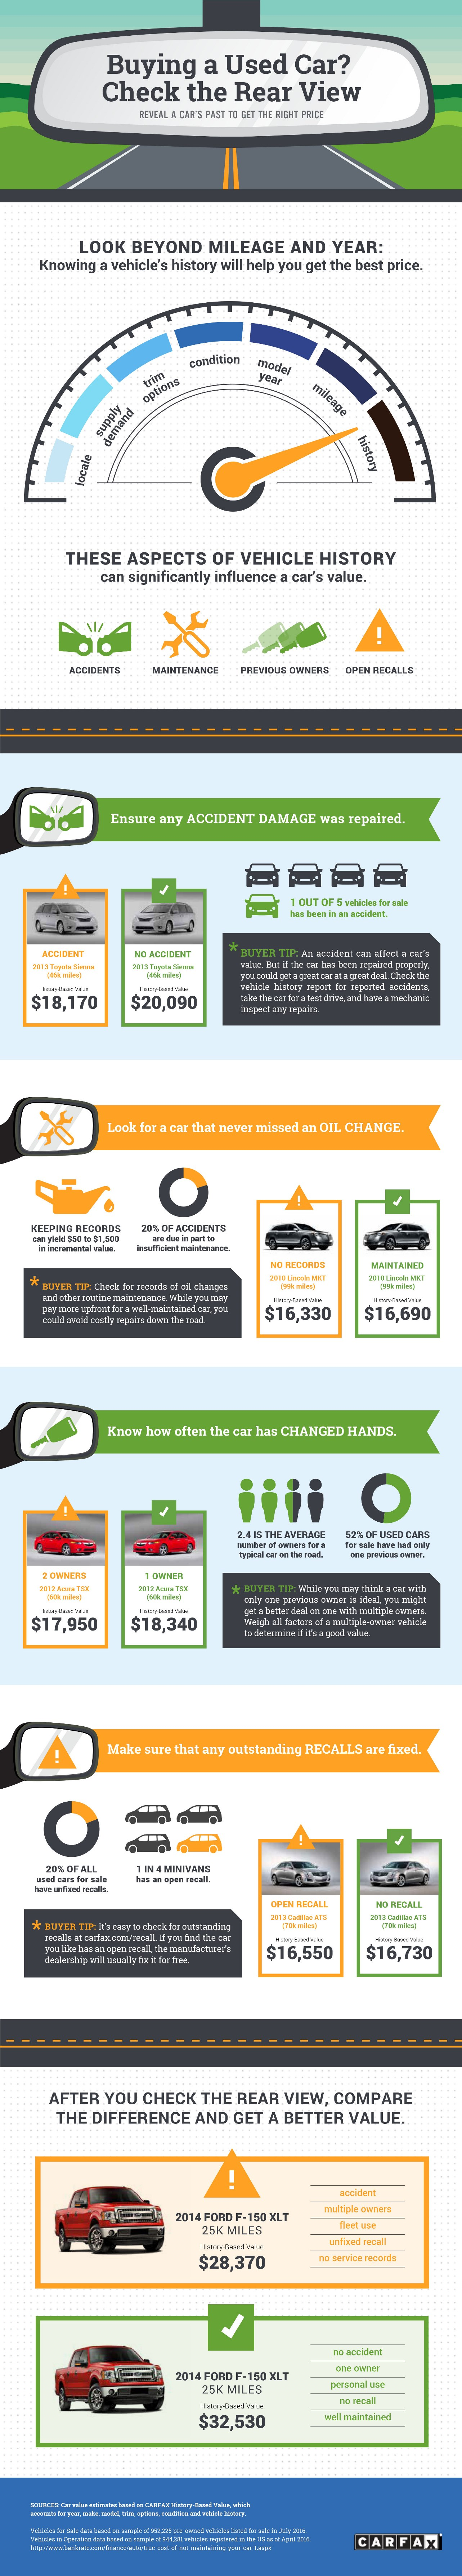 Carfacts Used Cars Elegant 4 Factors that Impact Car Value